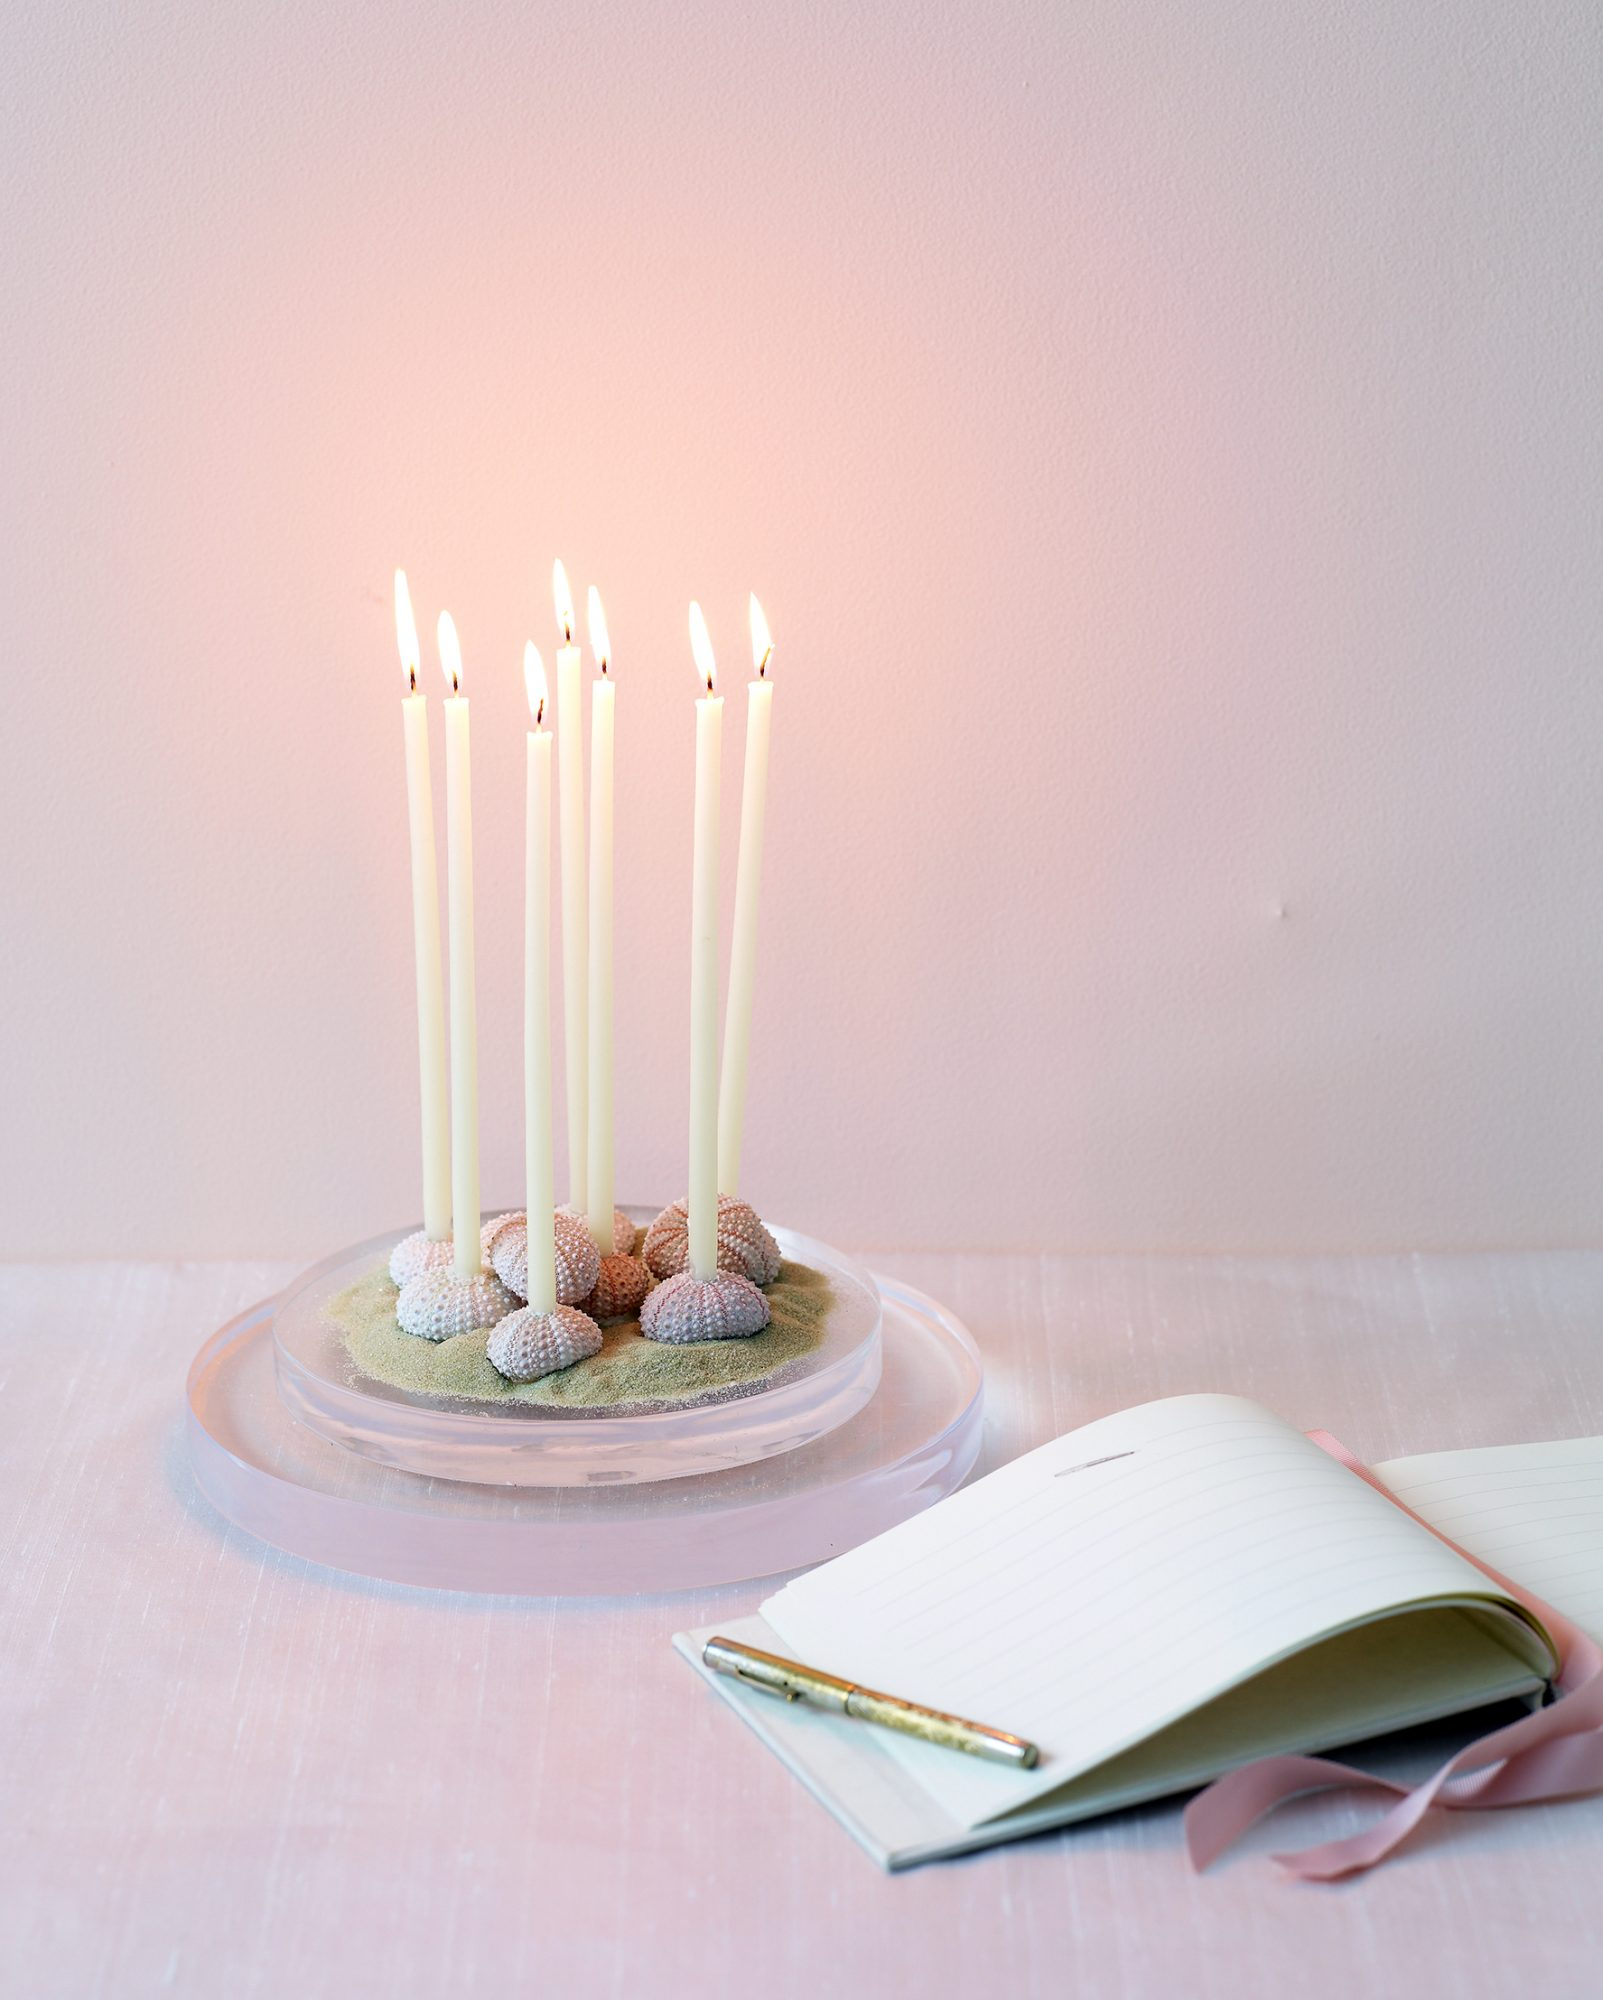 diy-beach-wedding-ideas-sea-urchin-candle-holder-su09-0615.jpg